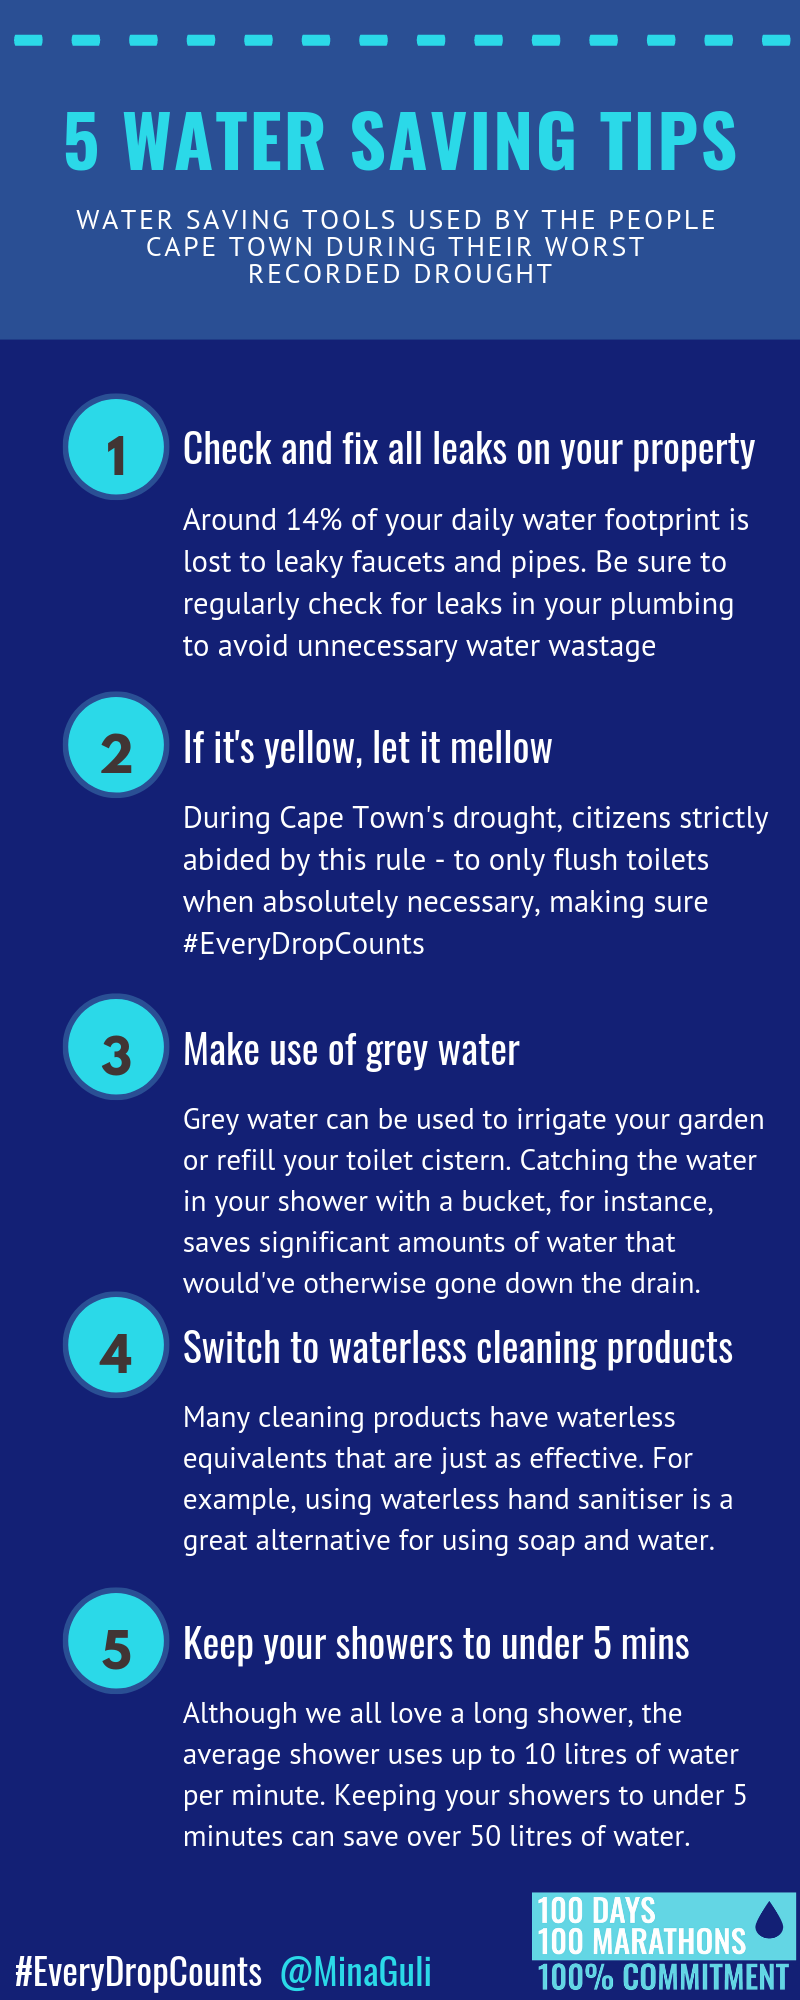 Cpt water saving tips.png